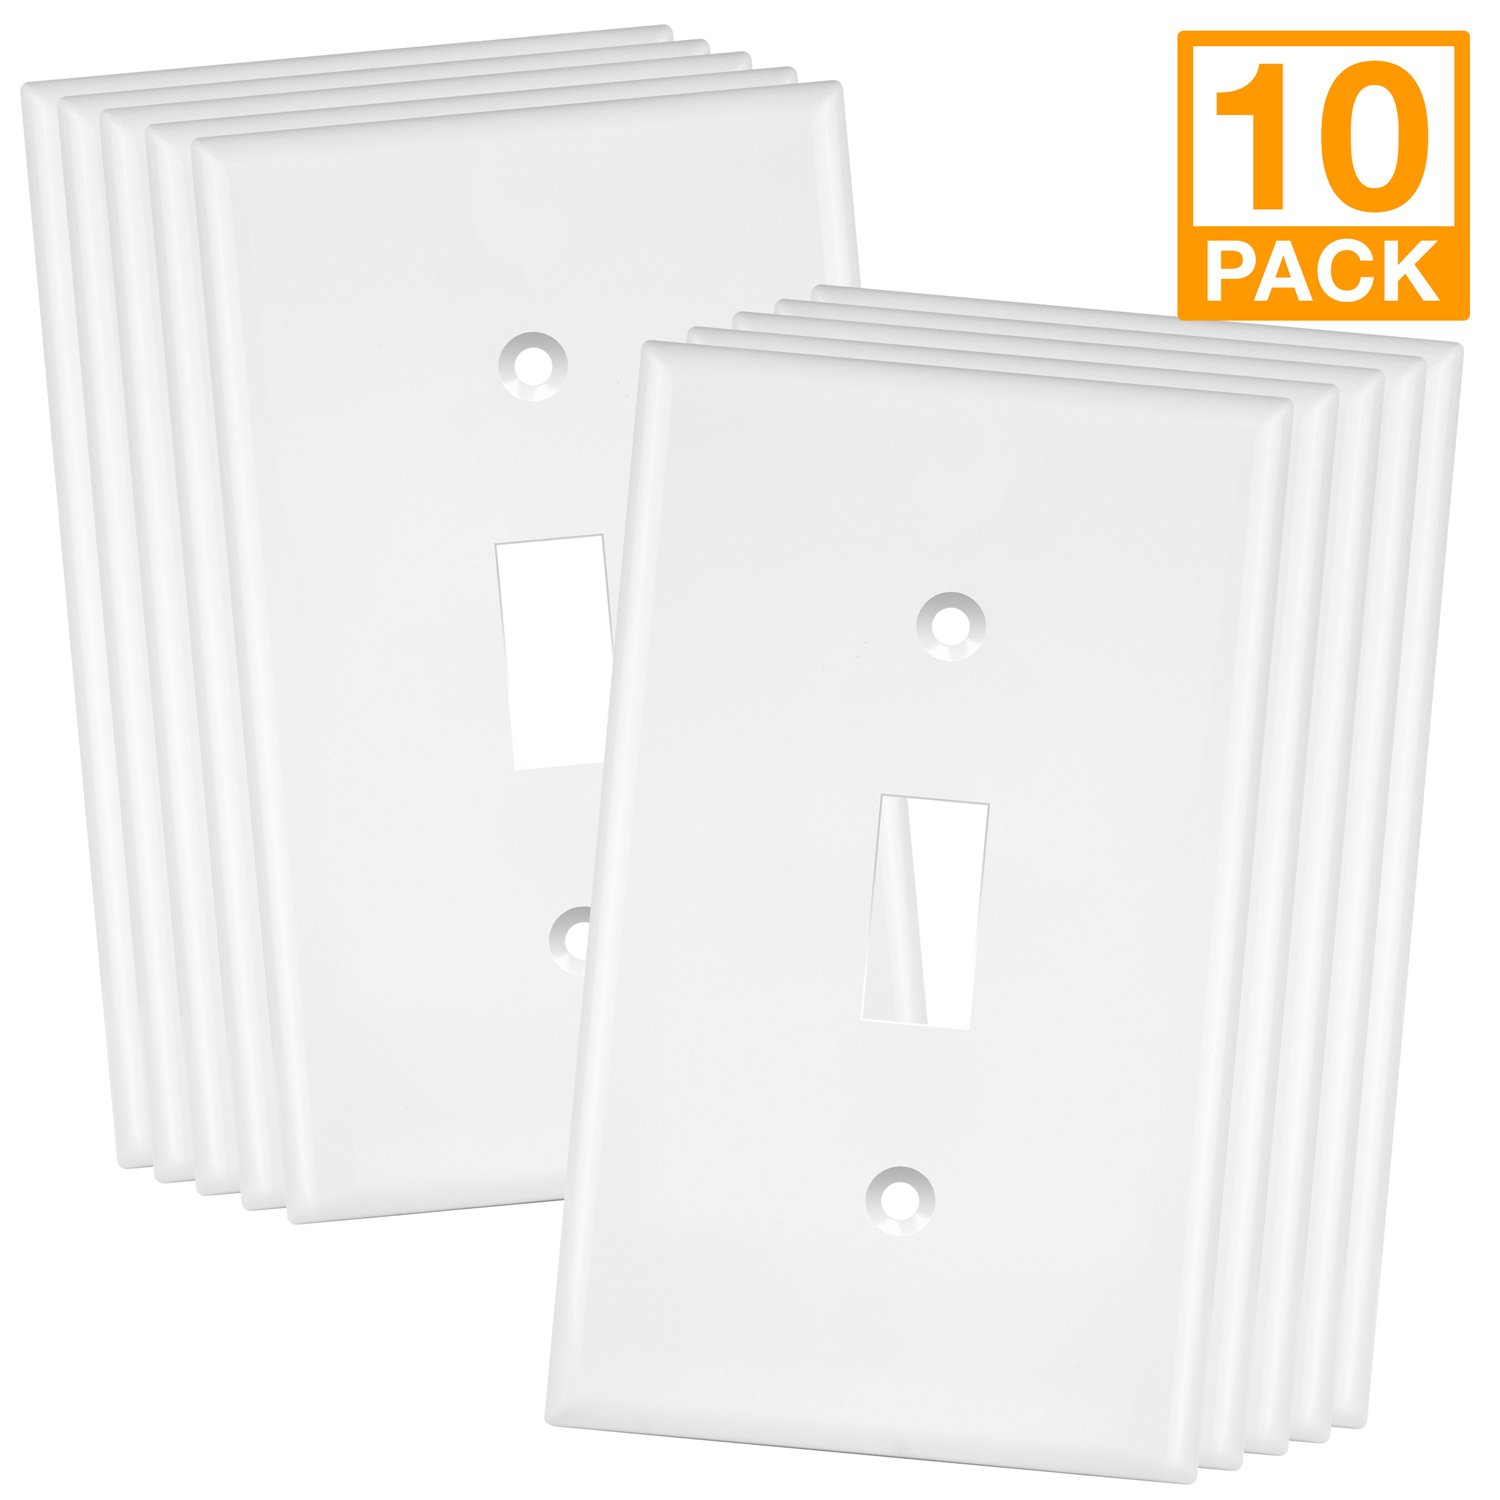 Enerlites 8811-W 1-Gang Toggle Switch Wall Plate, Standard Size, Unbreakable Polycarbonate, White - 10 Pack